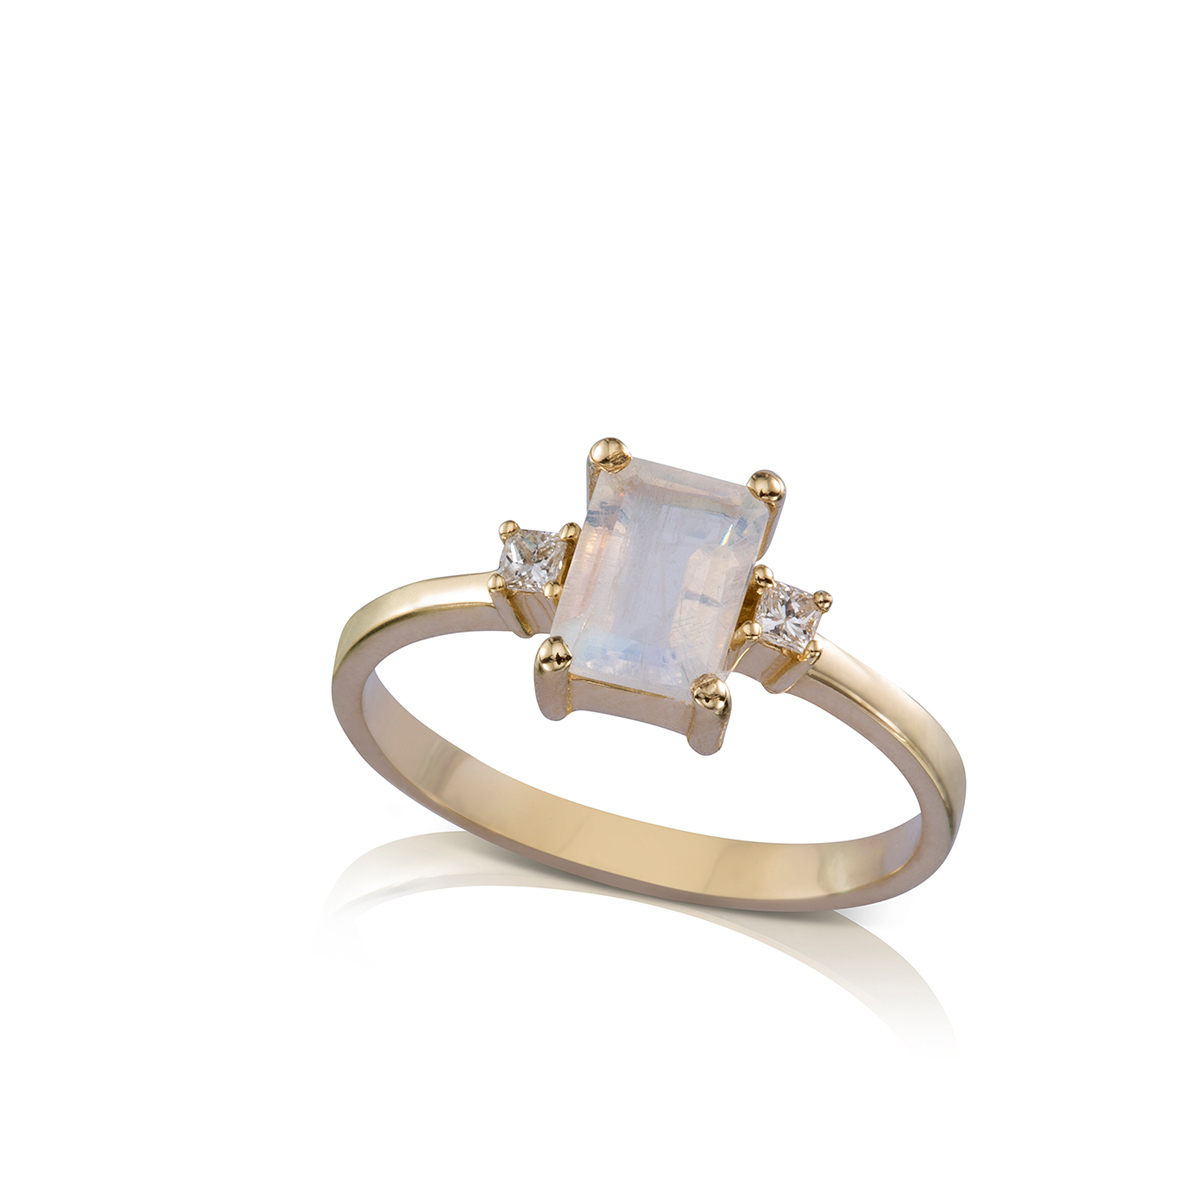 Moonstone and diamonds engagement ring